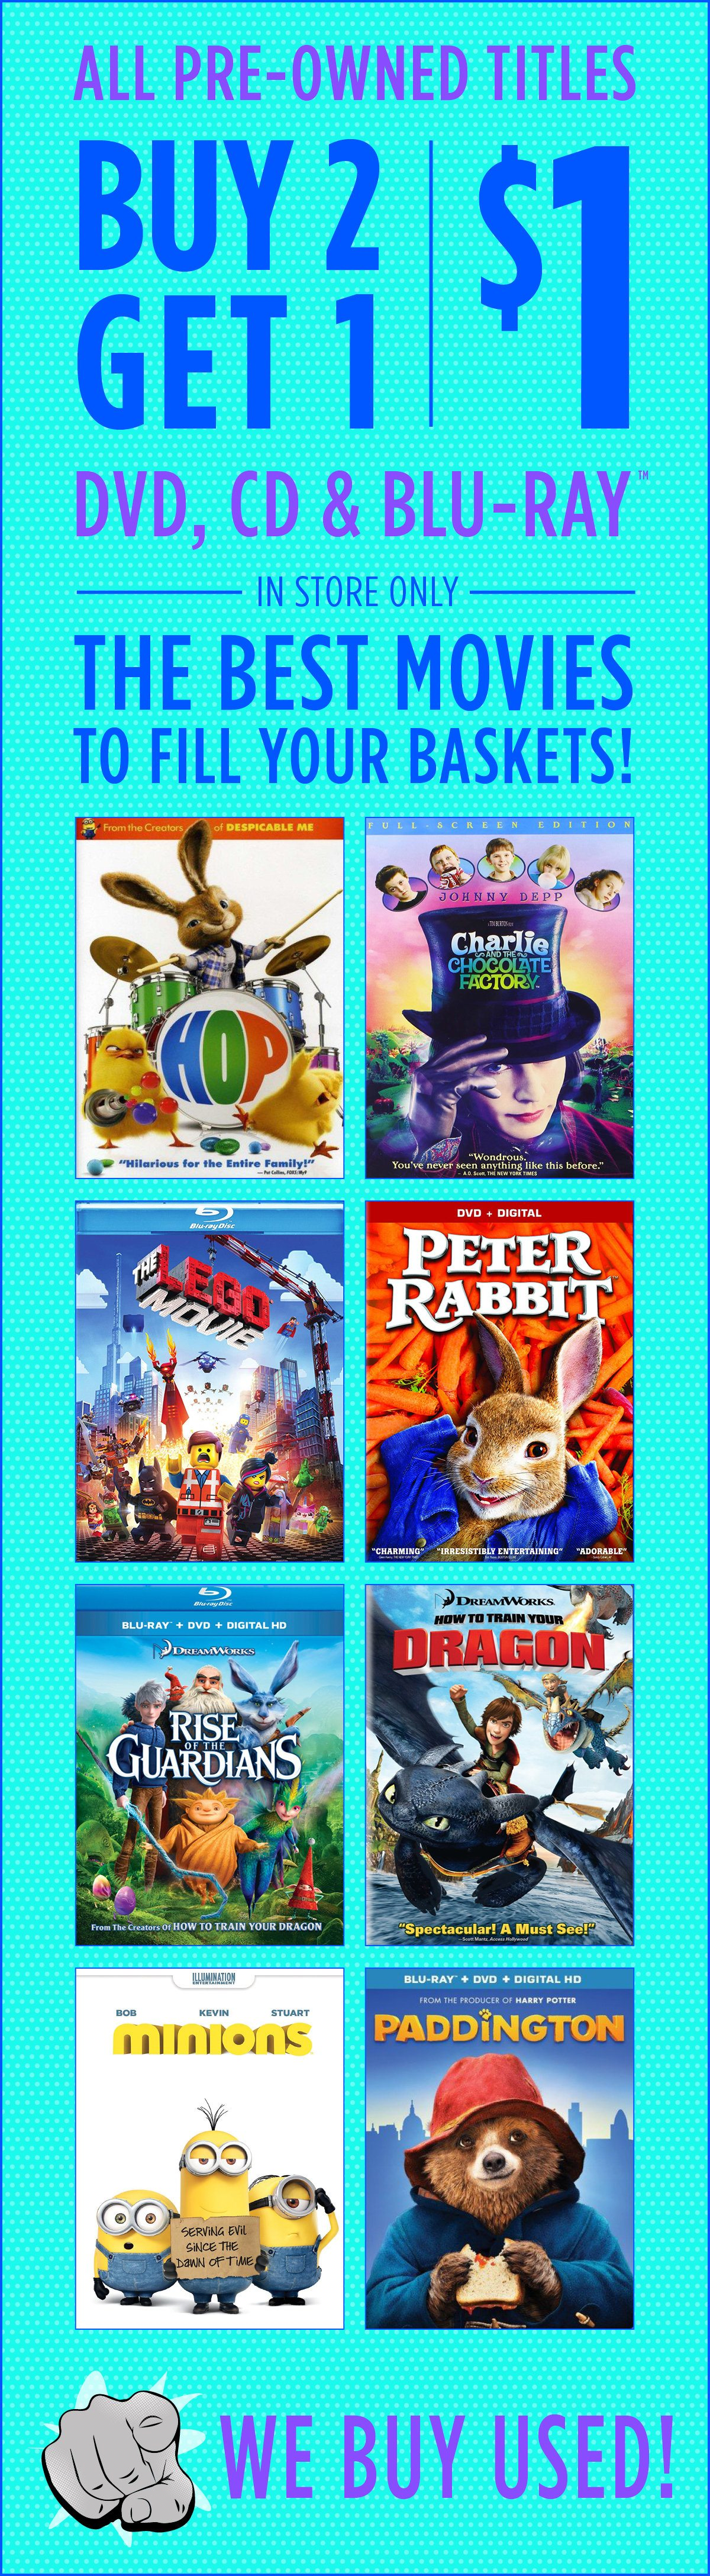 The best used movies are Buy 2 Get 1 for $1 - FYE Email Archive